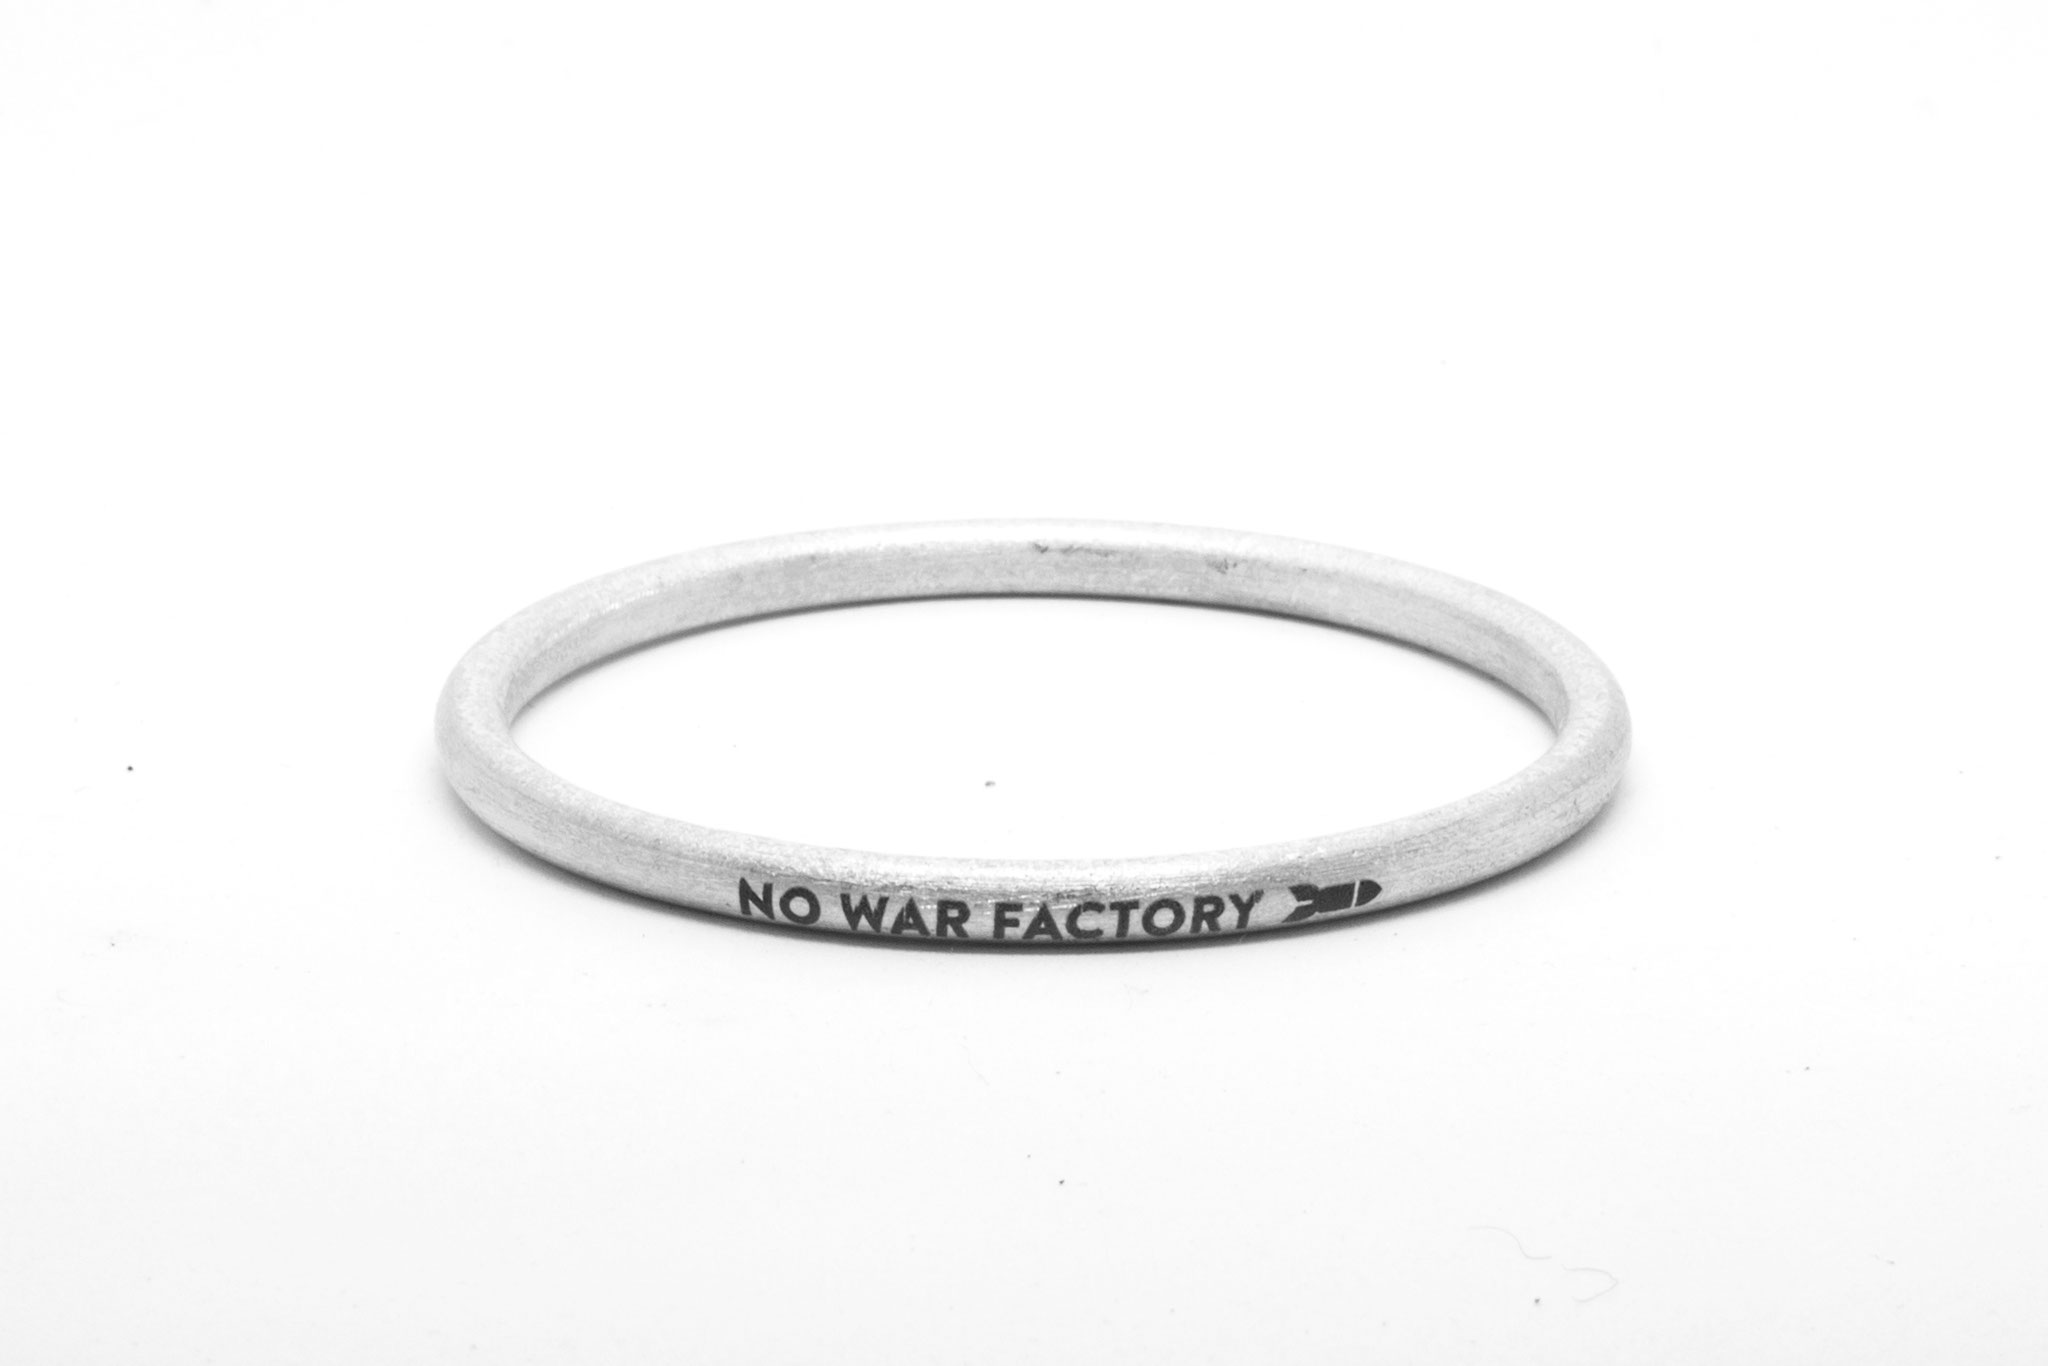 No War Factory Bangle 2018